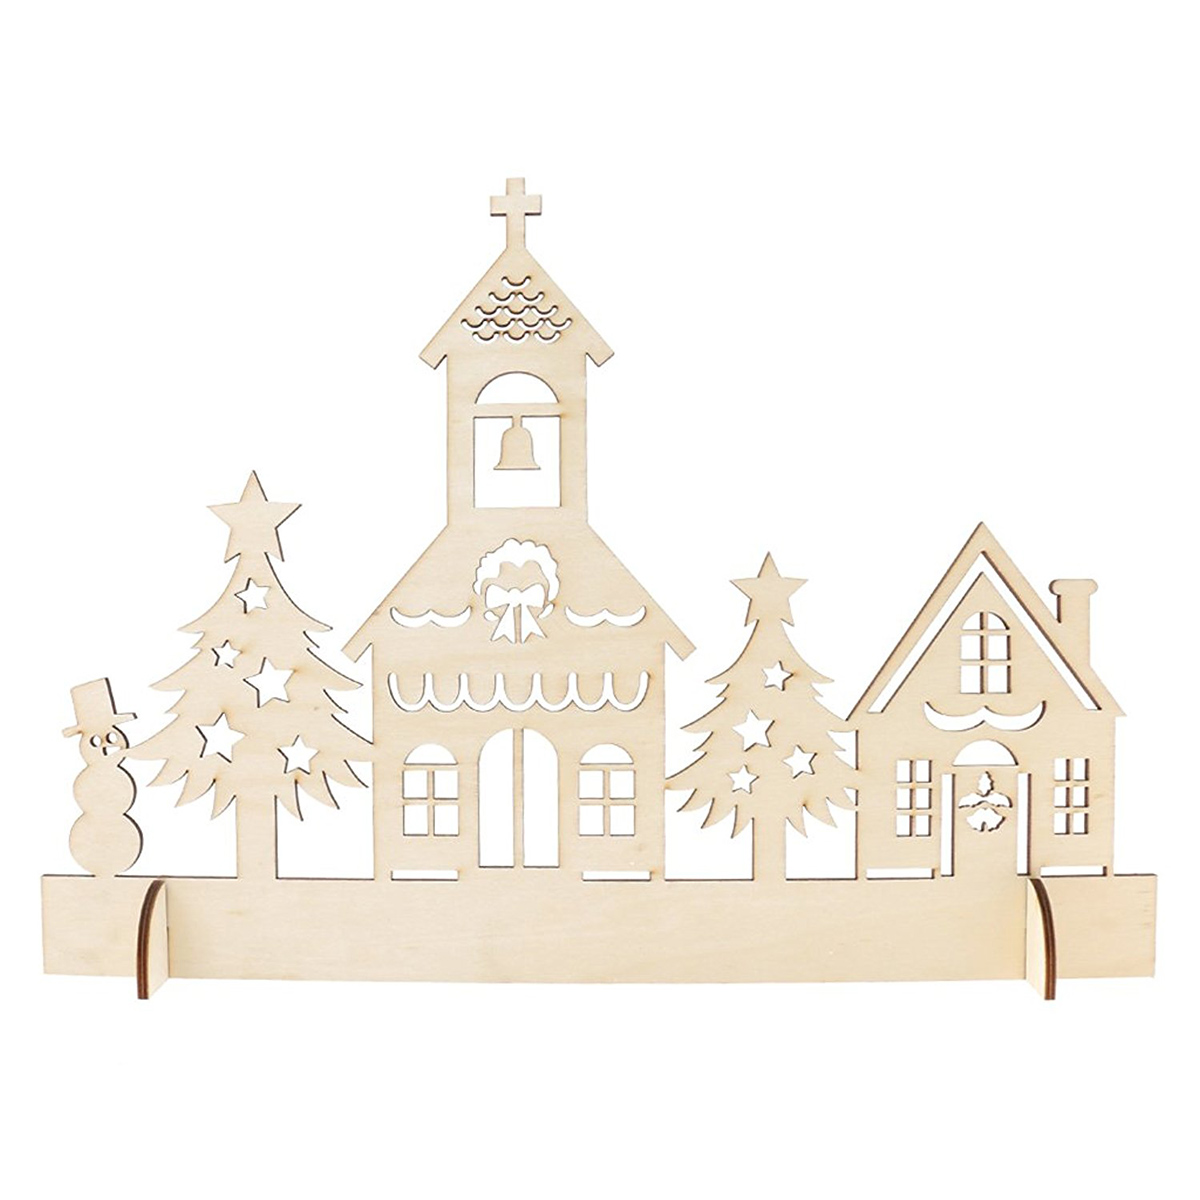 Wooden Christmas Decor Woodland Church Ornament Handcraft for Christmas New Year(China (Mainland))